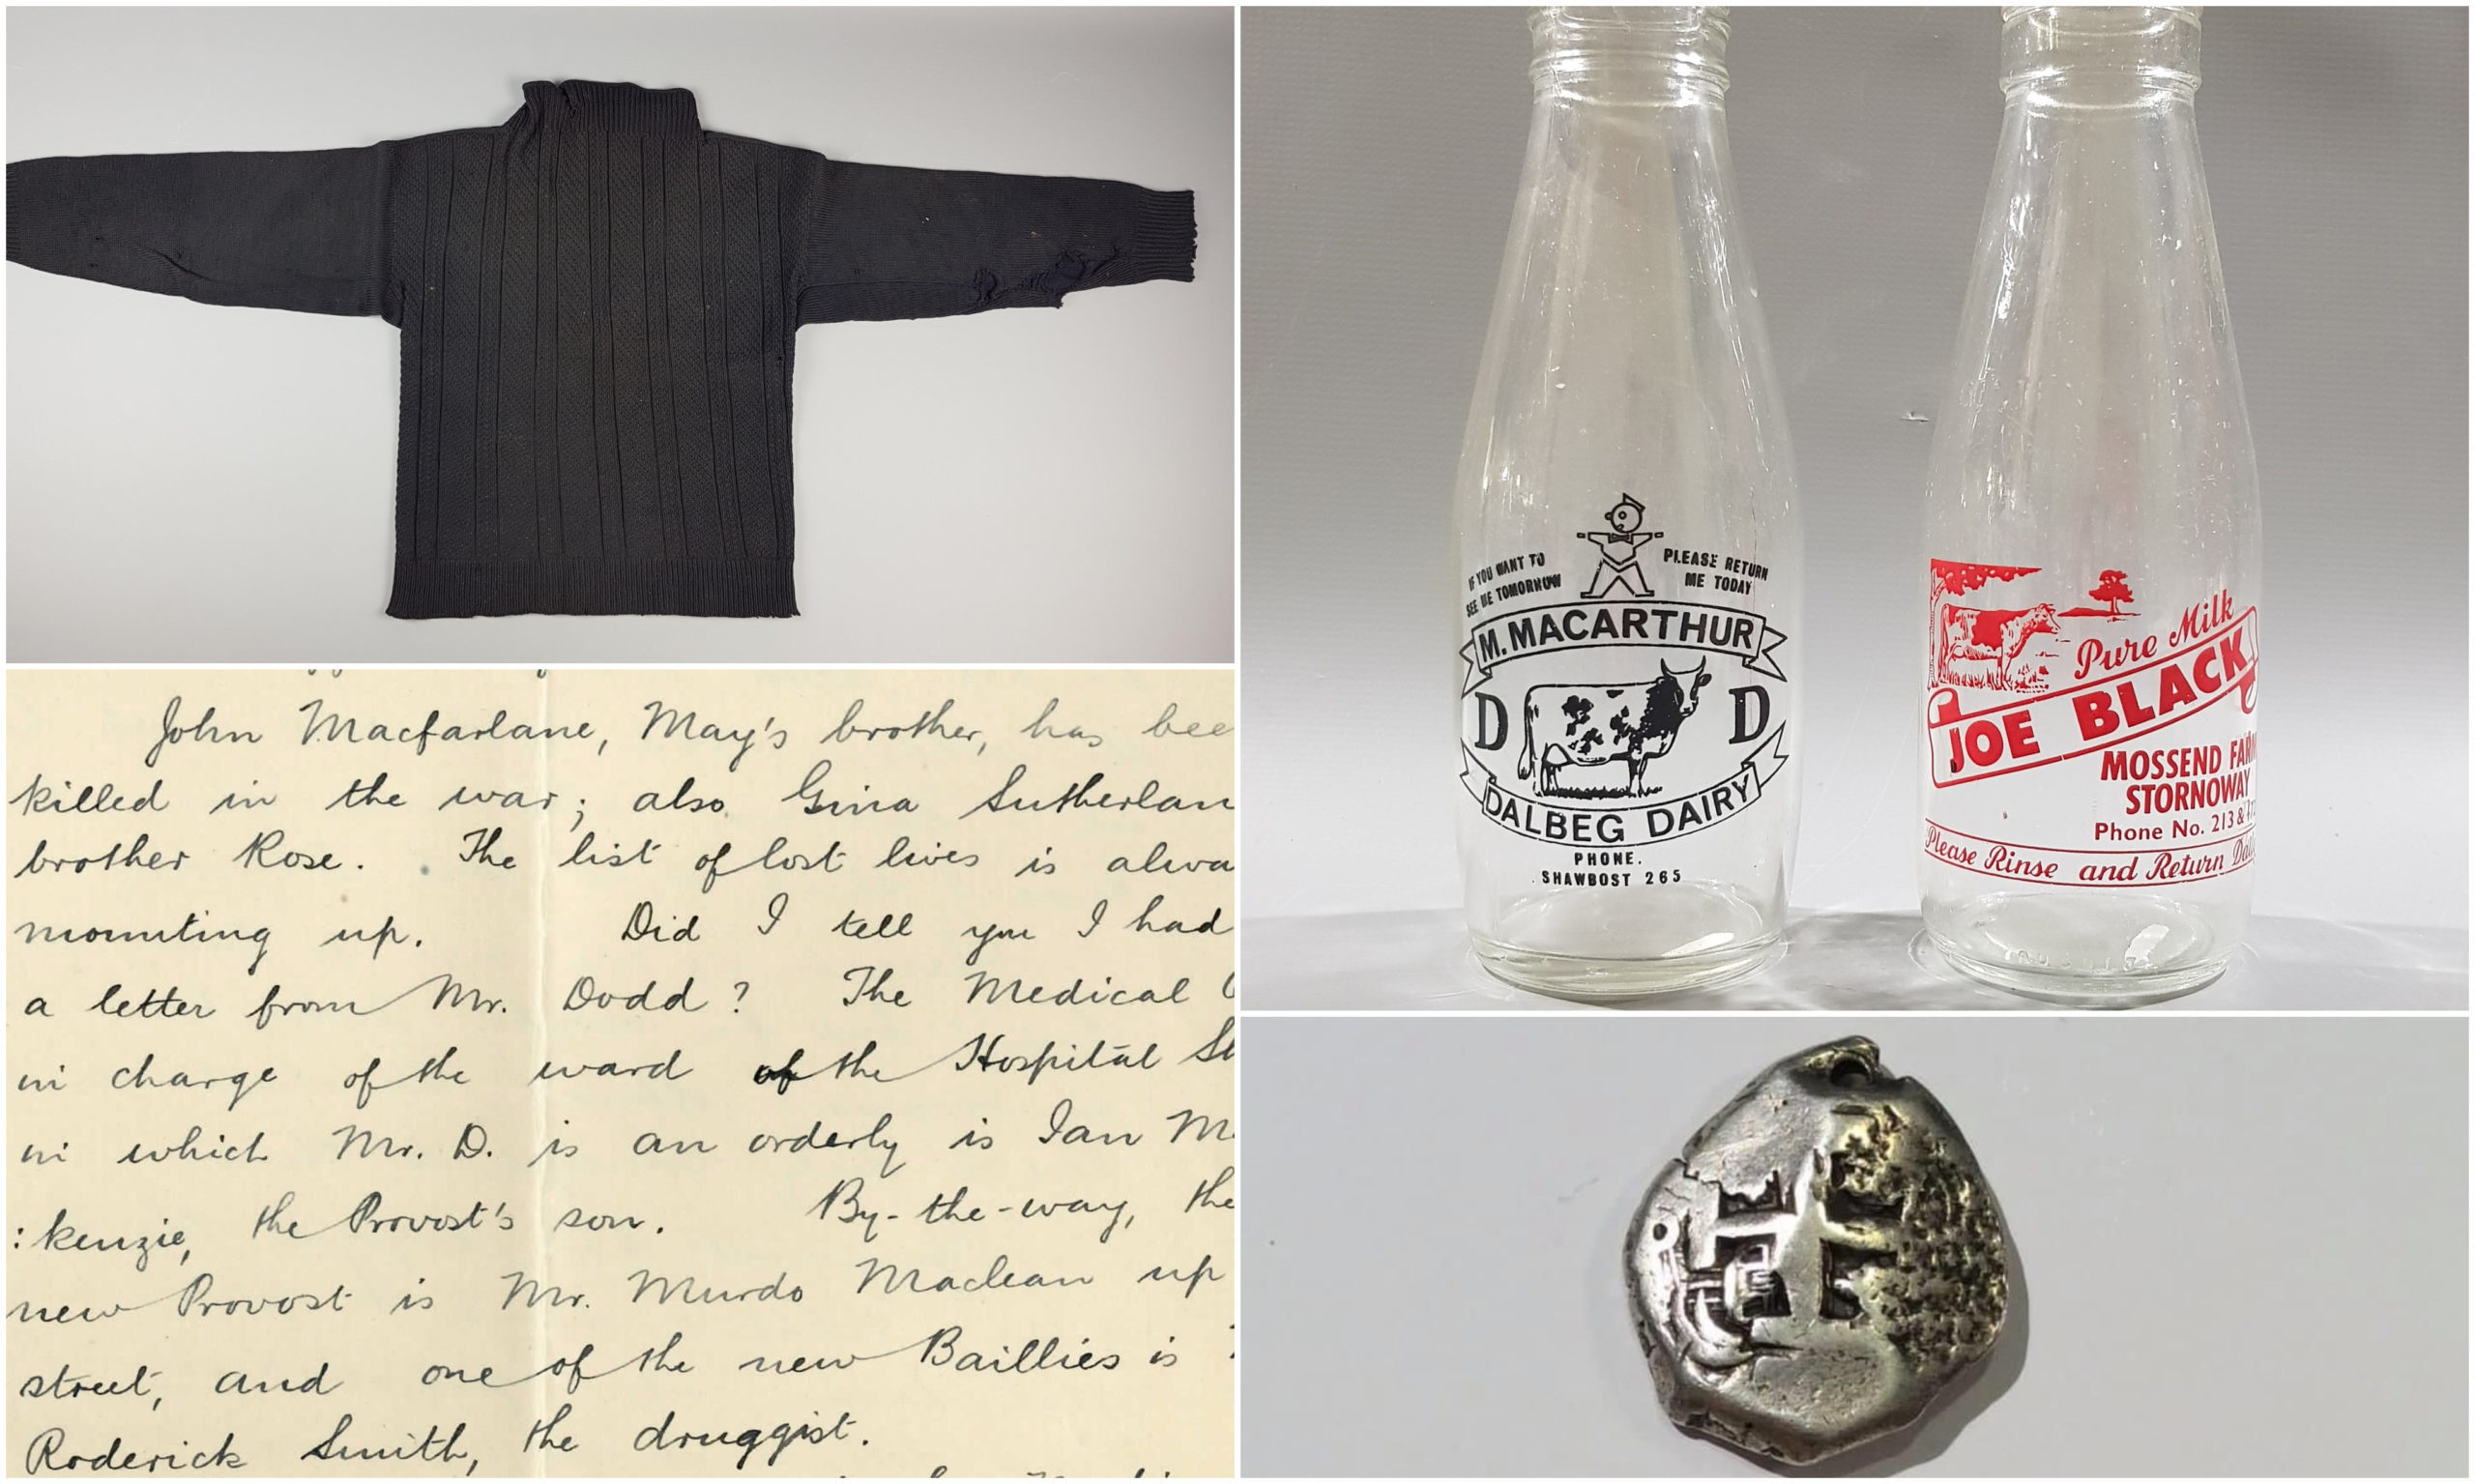 Some of the more popular items included as part of the digital upload